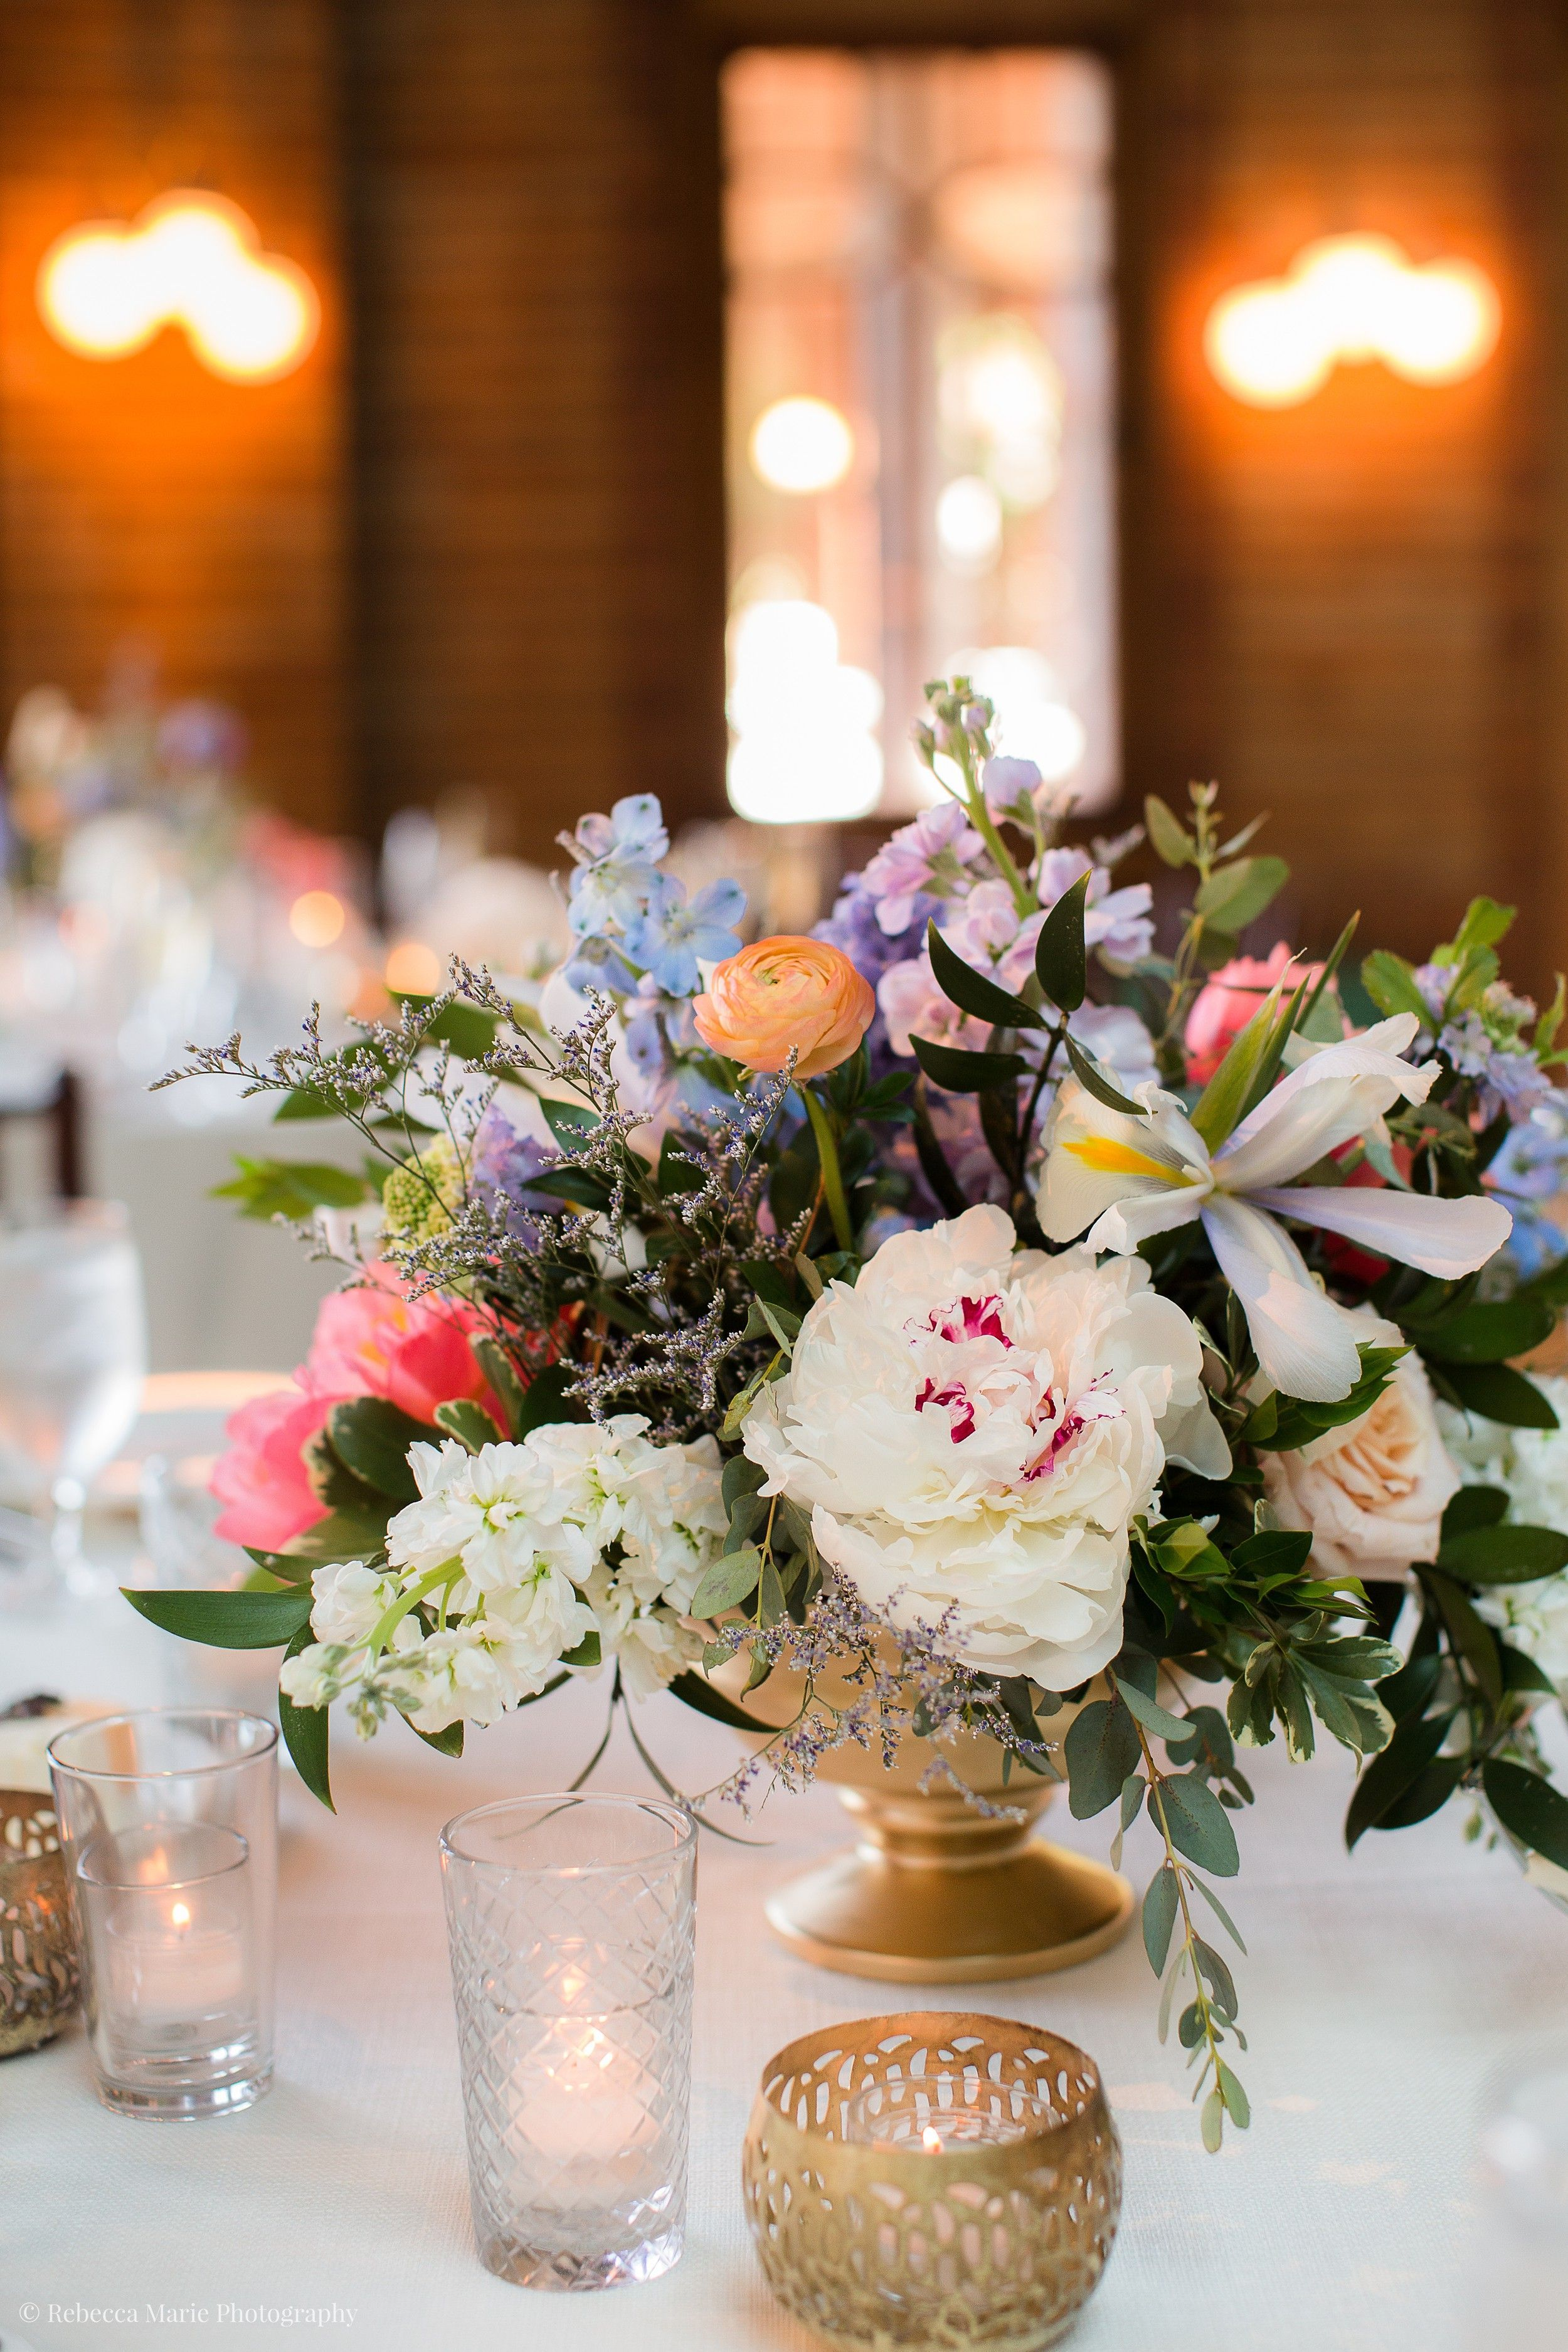 Cafe Brauer Wedding Day Wedding table decorations